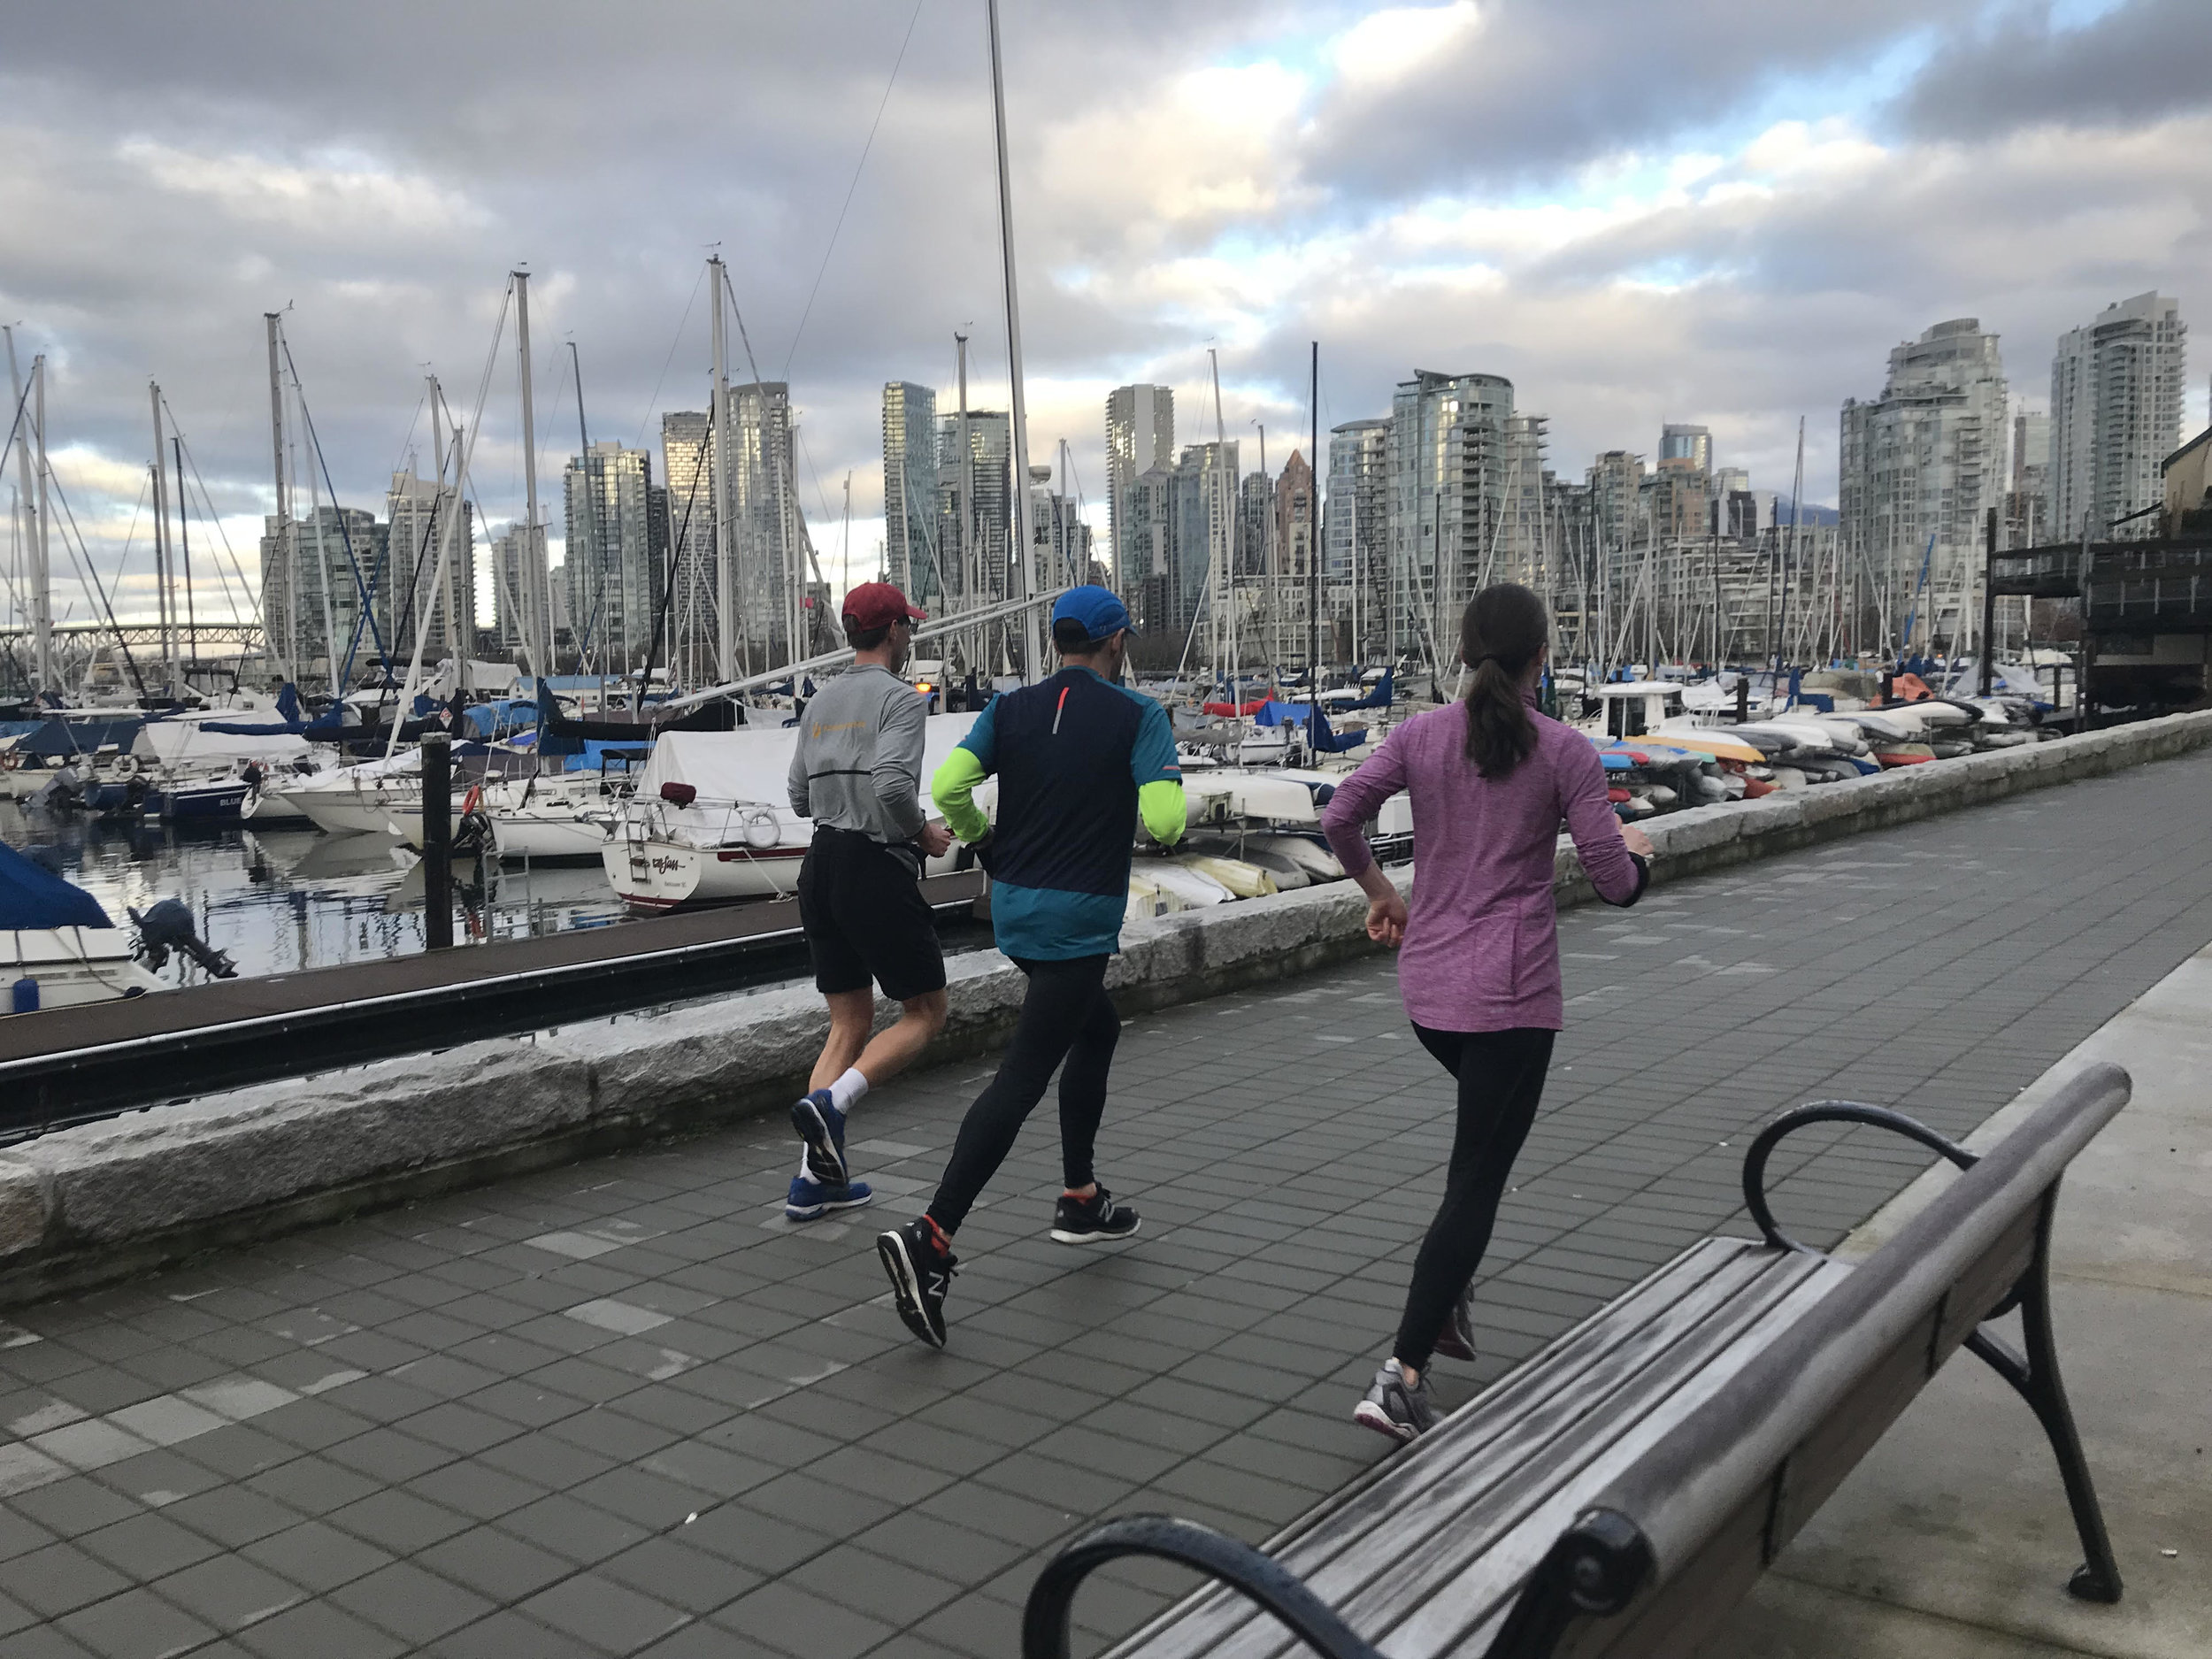 The group I ran with while visiting Vancouver, BC.